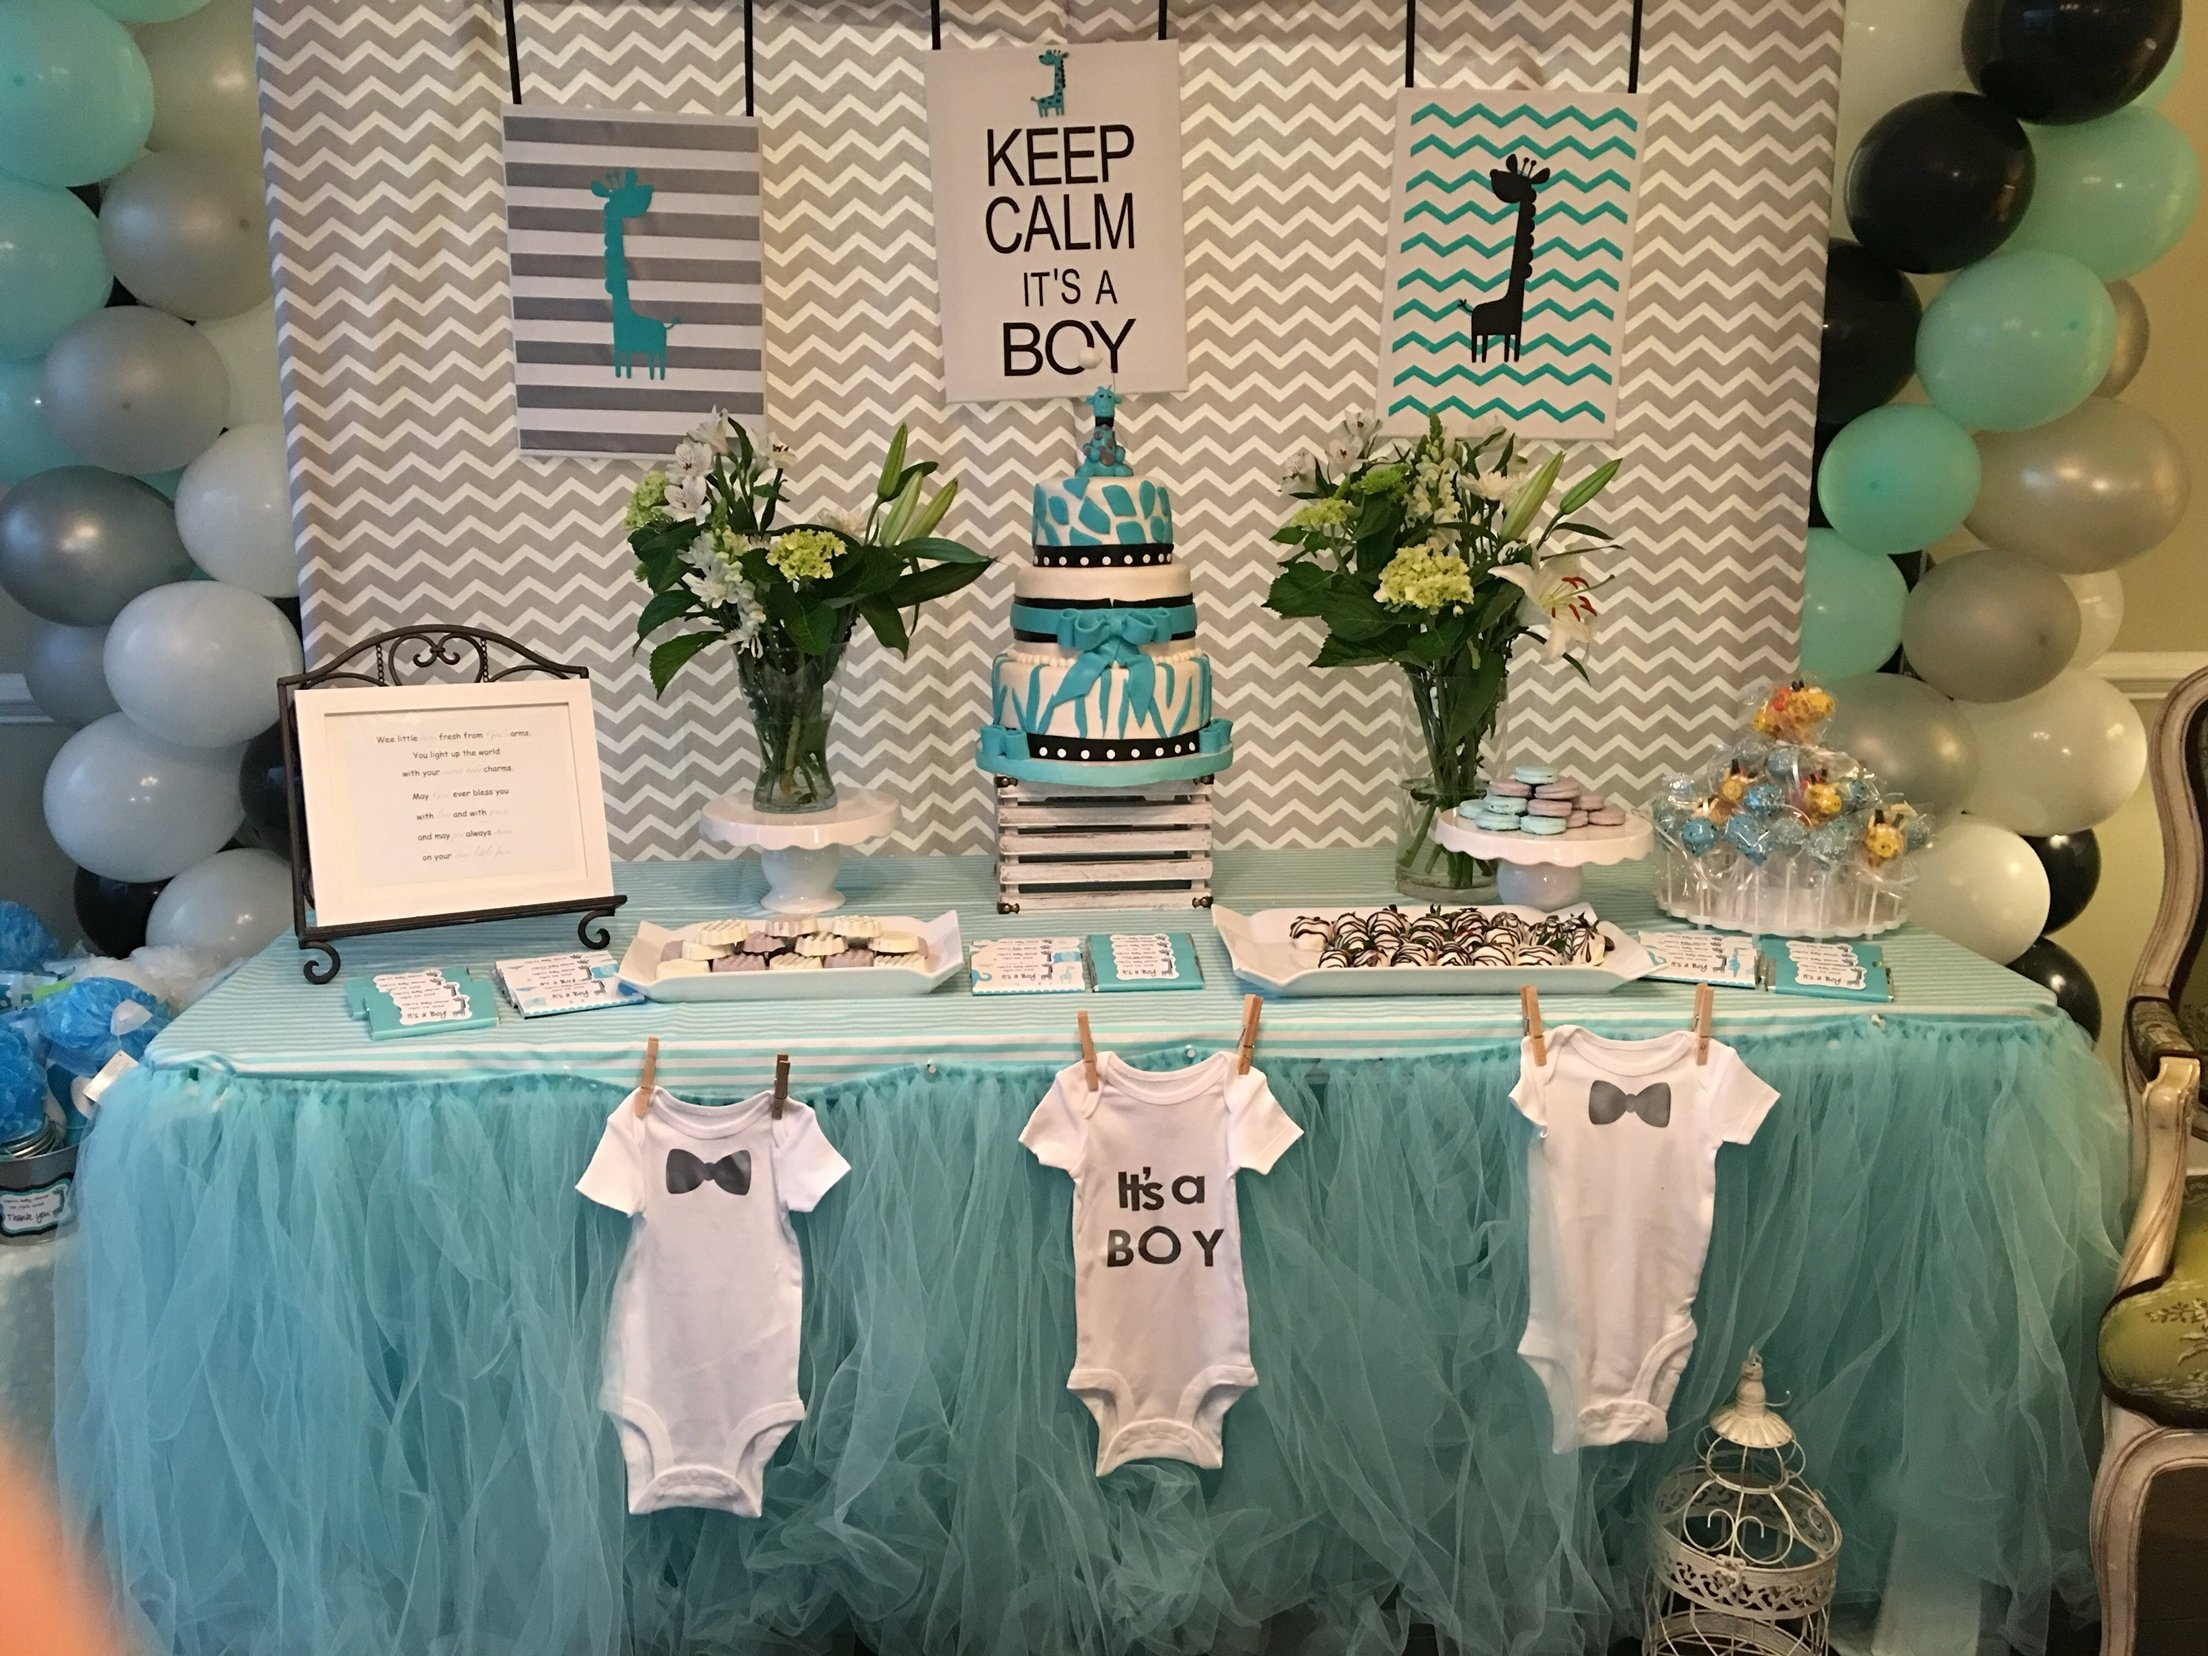 10 Amazing Baby Shower Ideas For Boy ideas baby shower decoration for boy theme easy centerpieces simple 2020